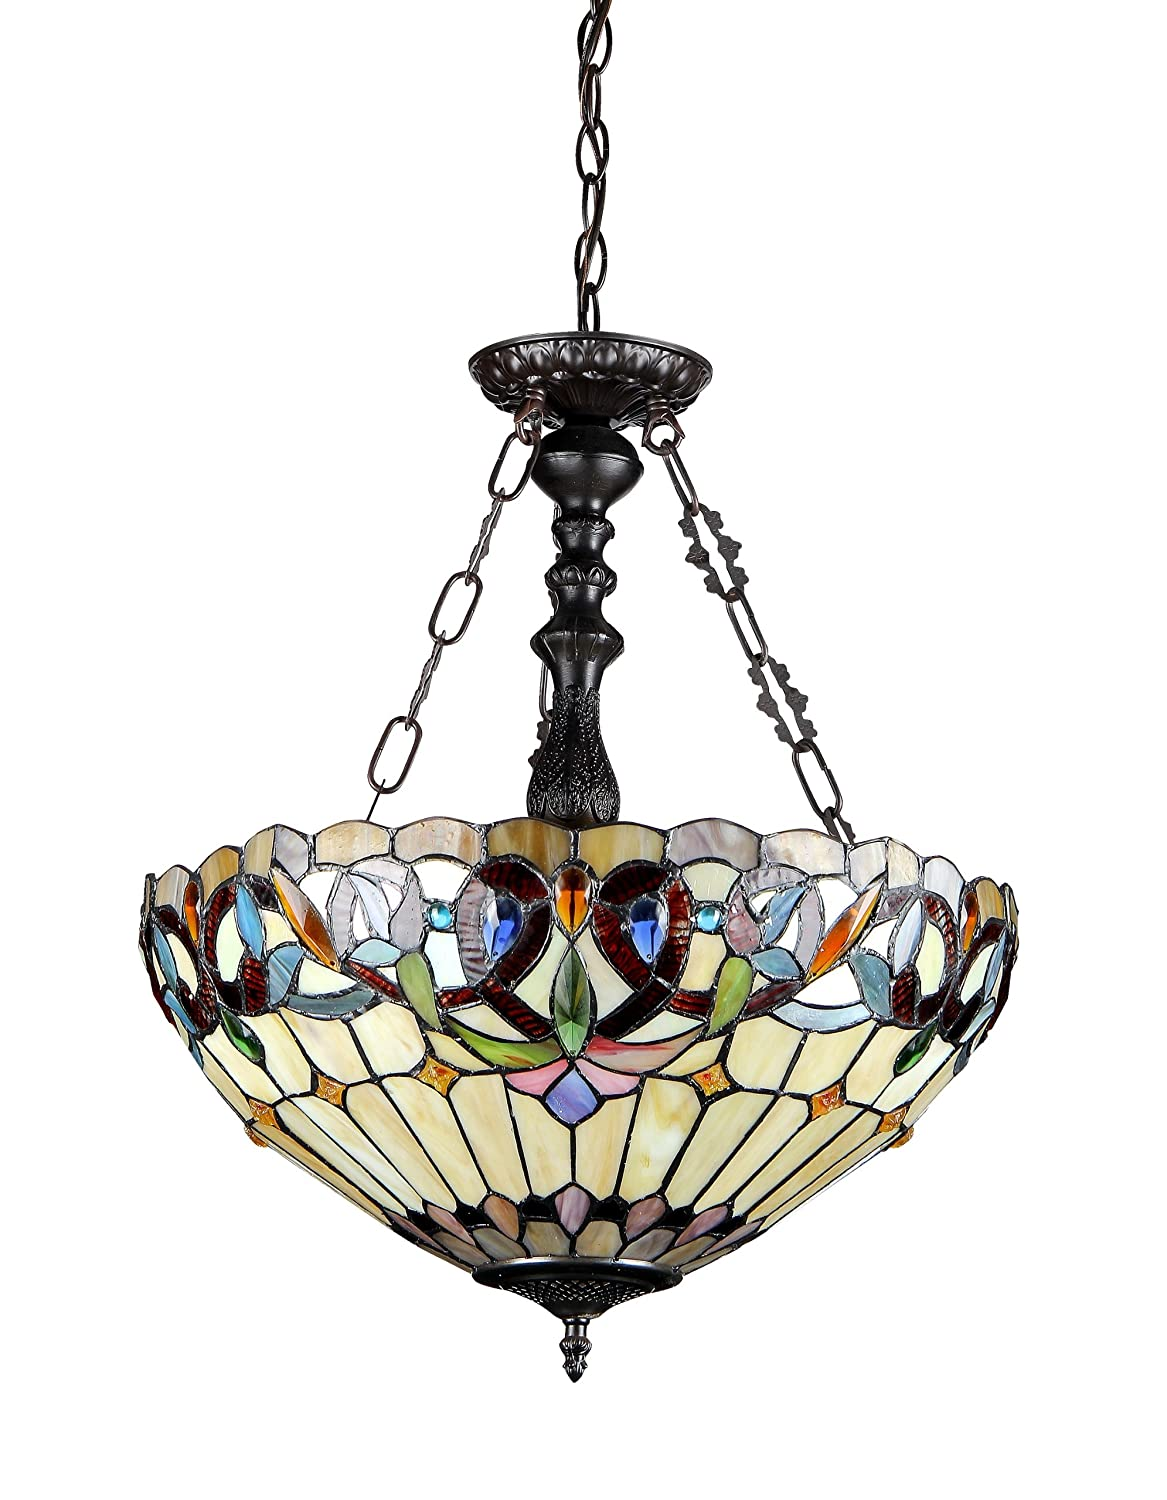 pendant awesome light clubanfi lovely led lights of com additional rustic with tiffany ceiling style luxury photos fans